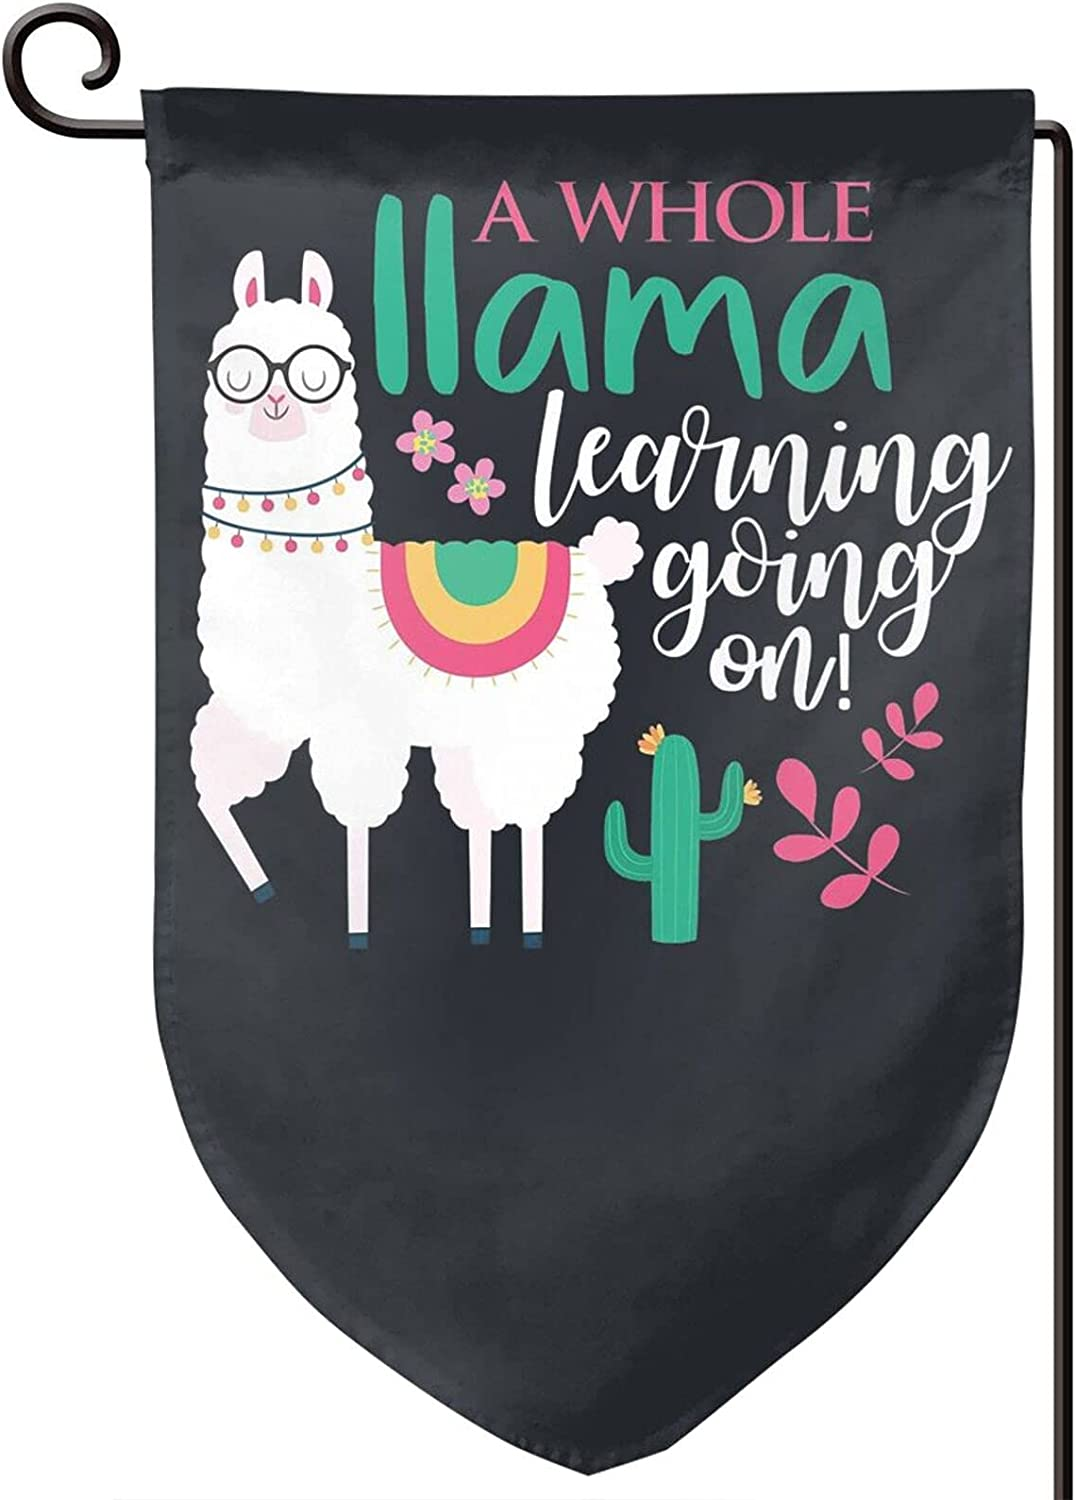 Xiojeiey A Whole Llama Learning Going On Double Stitched Vertical Flag for Garden Decorative Outdoor Decorative Anniversary Decoration 12 X 18 Inch American Garden Flag USA Flags